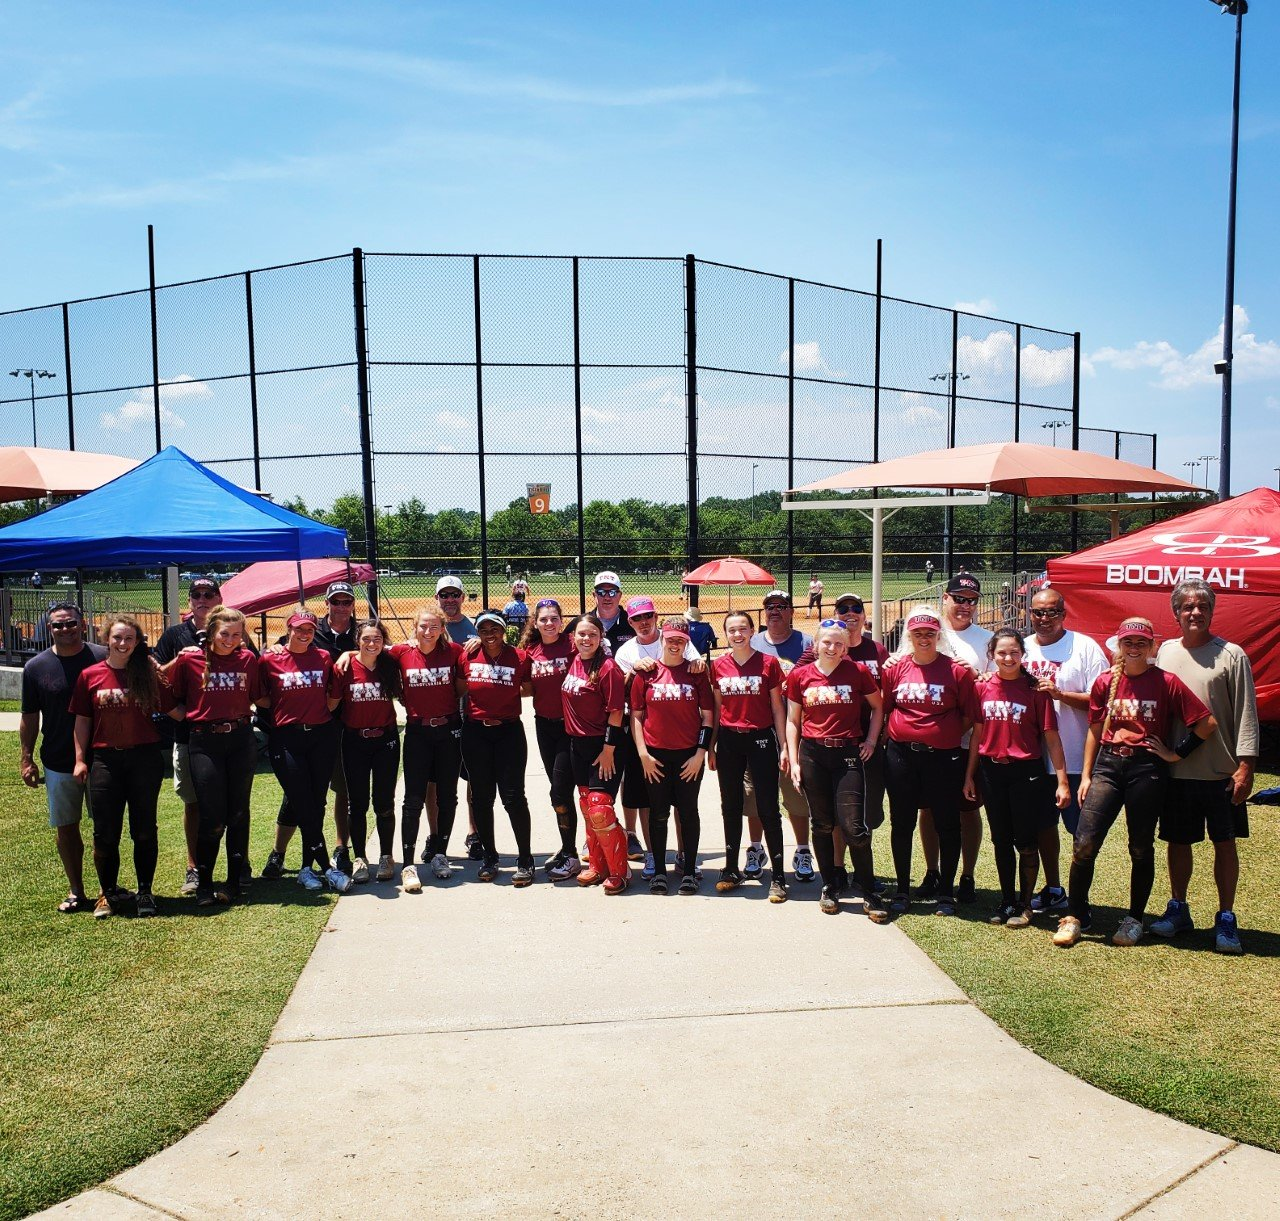 Over the weekend of June 19-21 in Spartansburg, South Carolina, the team played four games, going 3-1 against teams from North Carolina, South Carolina, Georgia and Florida.